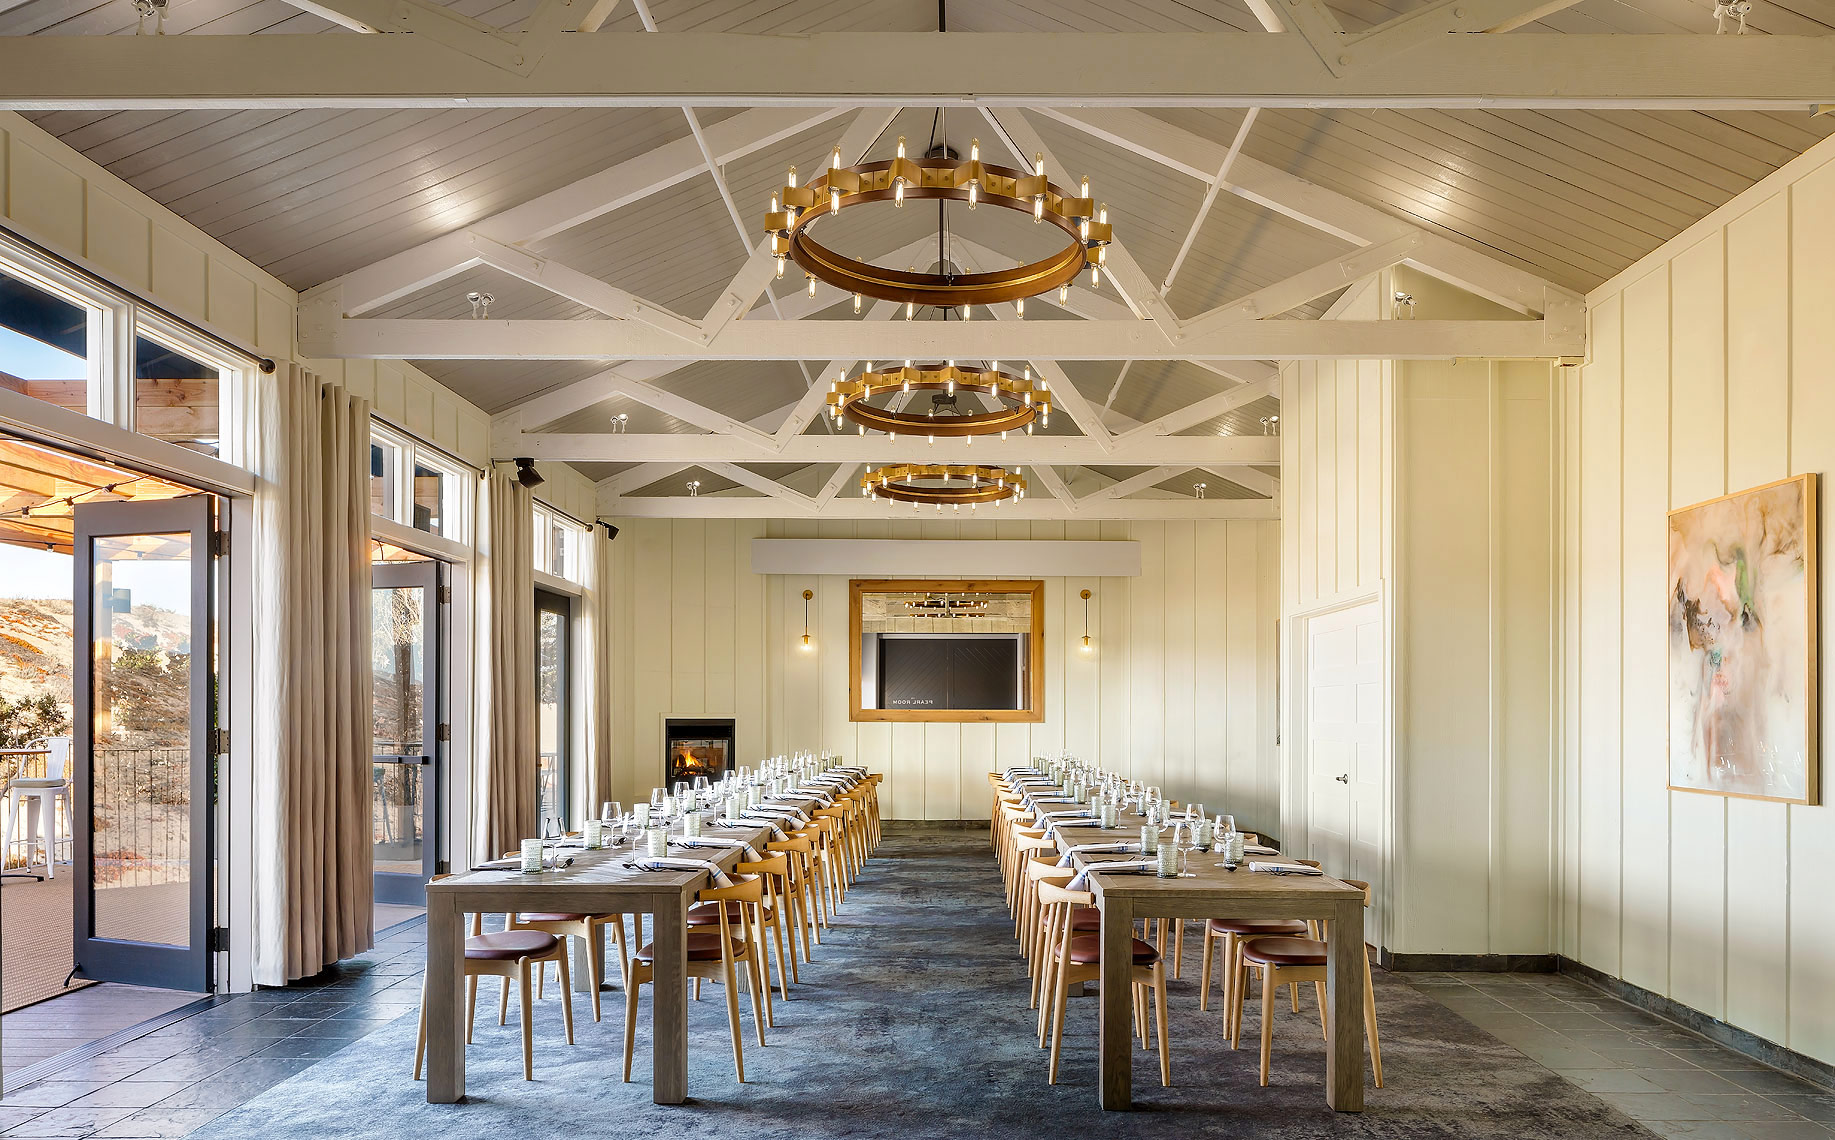 Sanctuary Beach Resort Monterey, California -  meeting room - Hotel Photography